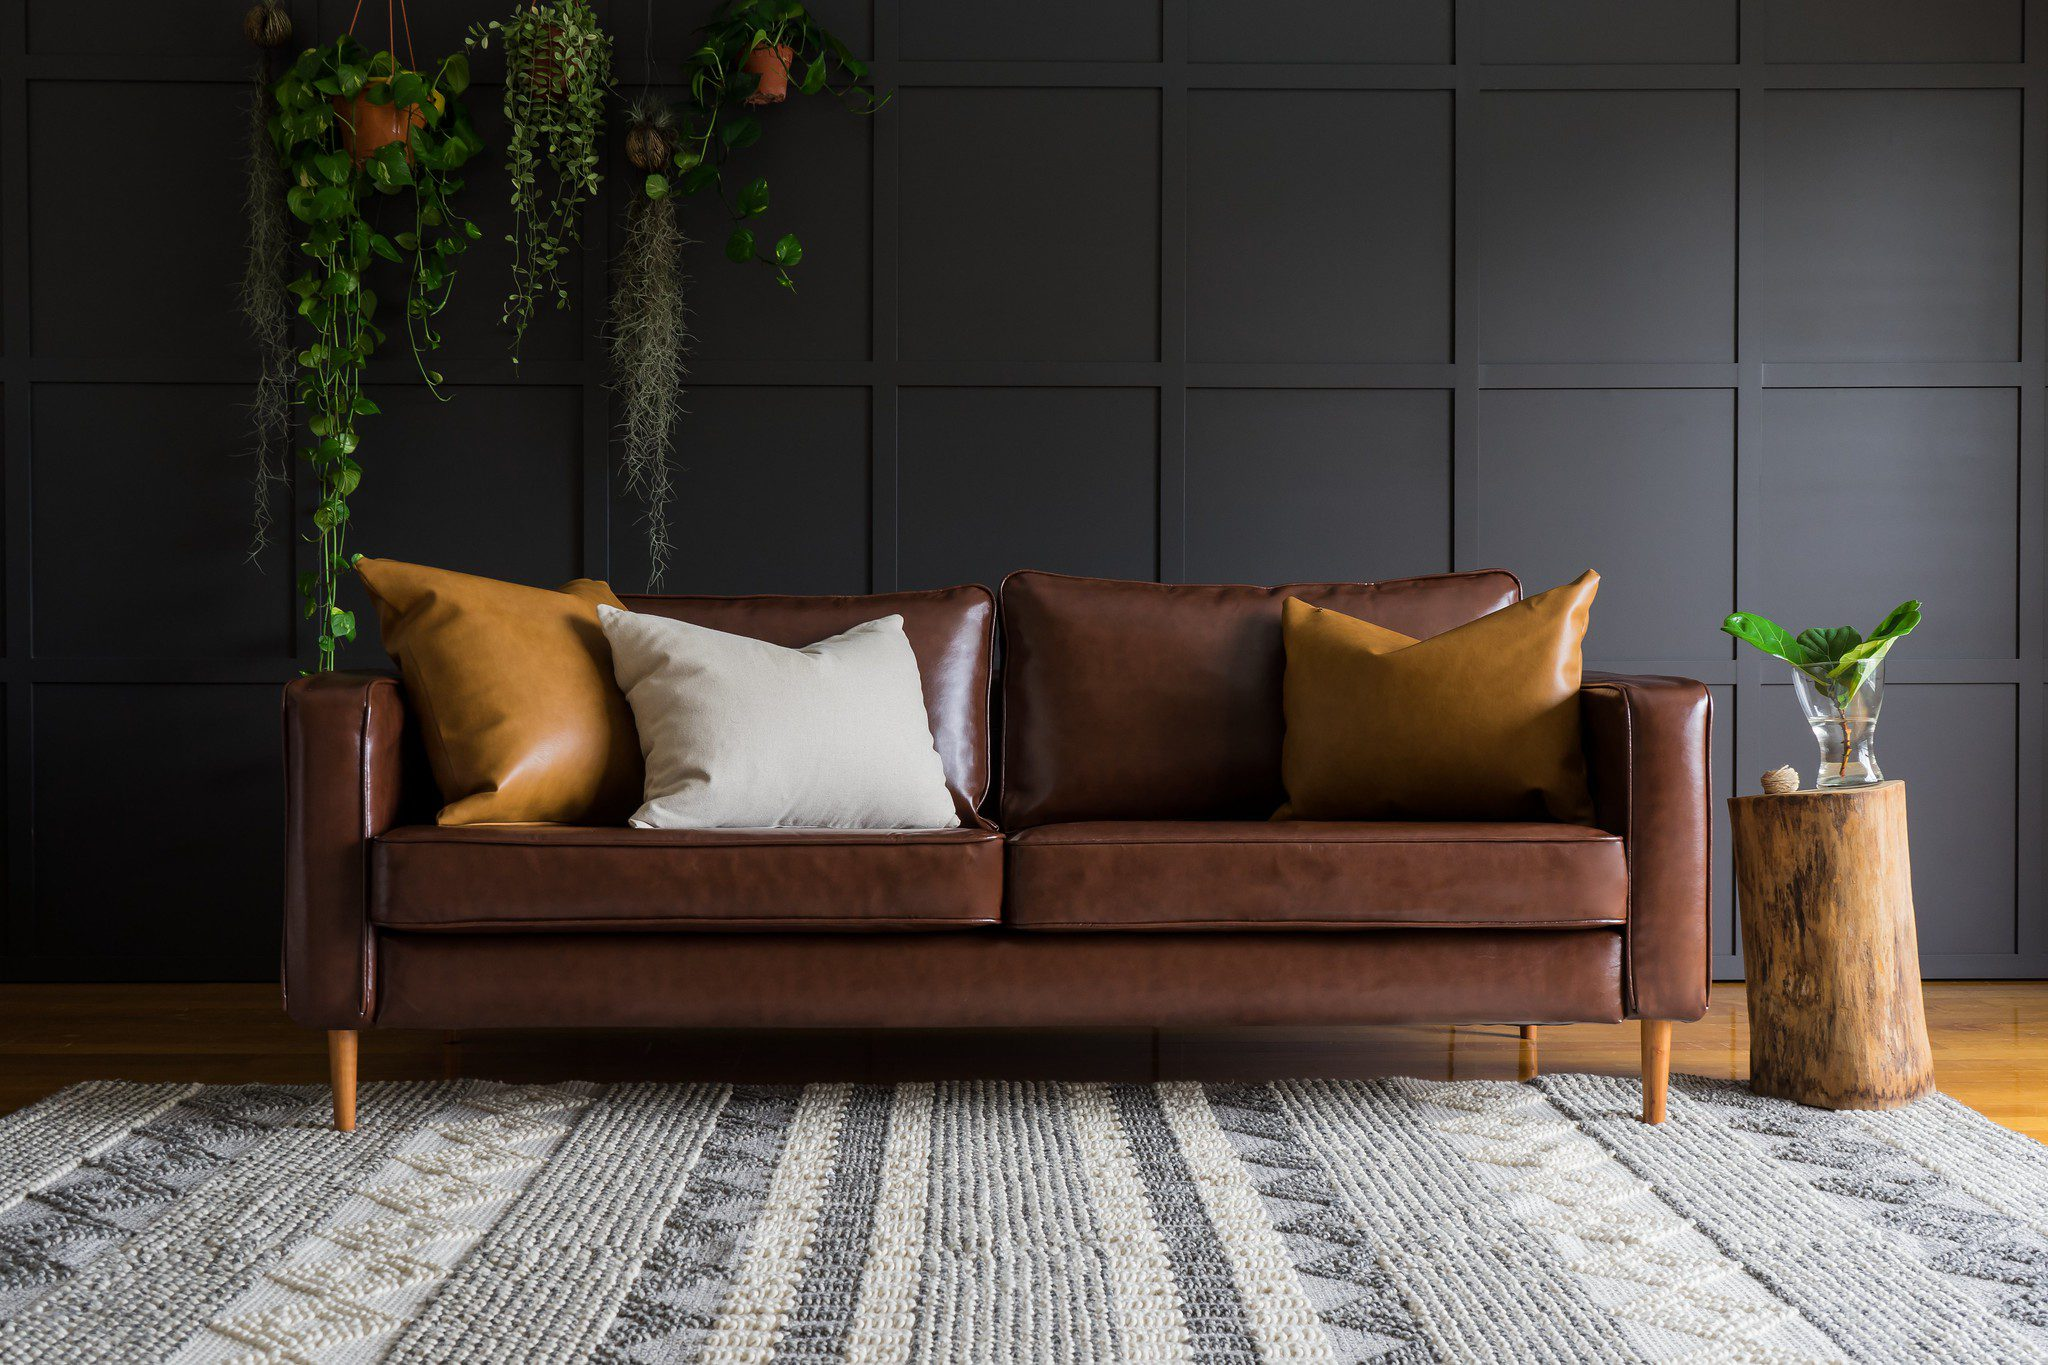 How To Clean Your Leather Couch Safely And Effectively Comfort Works Blog Design Inspirations